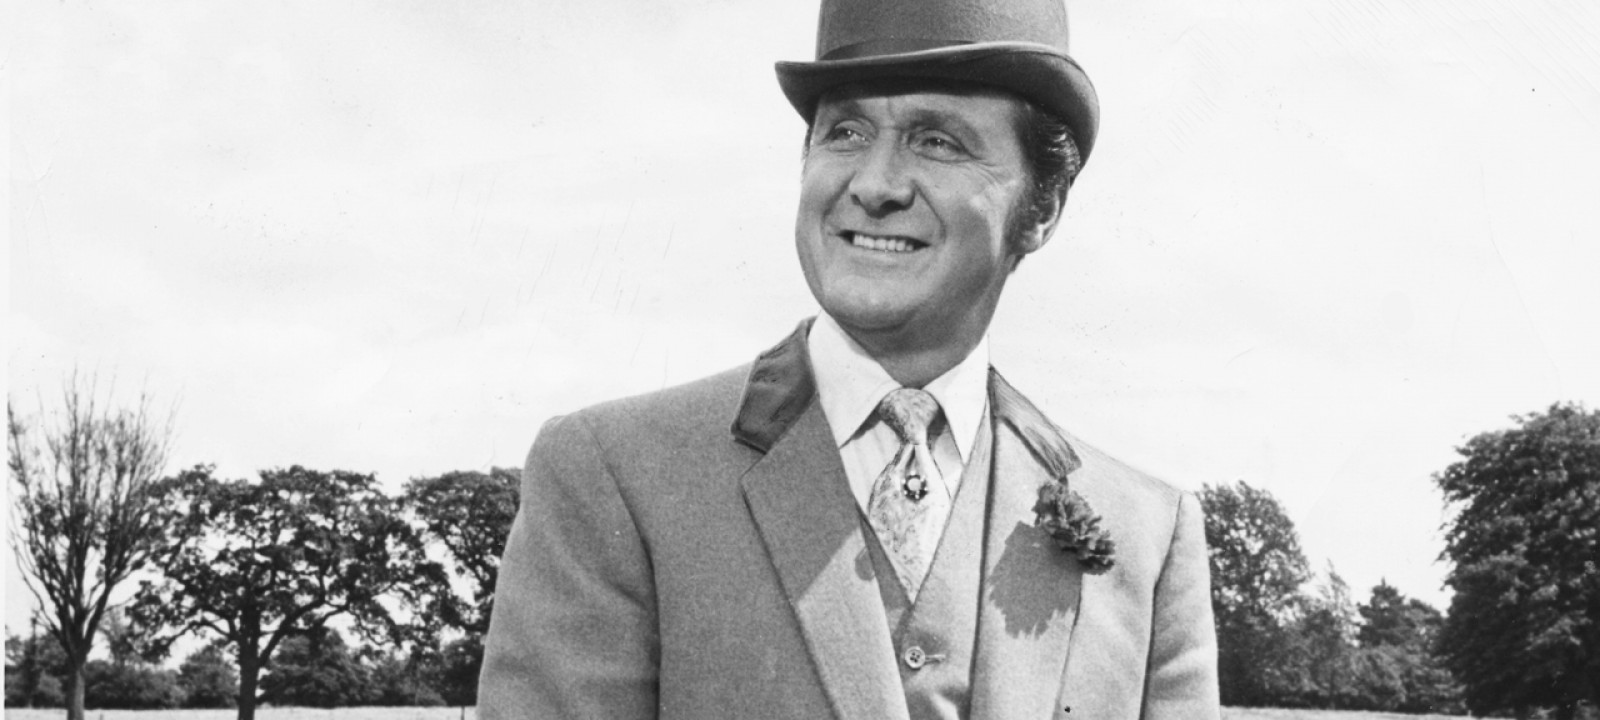 Patrick Macnee (Pic: Keystone/Hulton Archive/Getty Images)